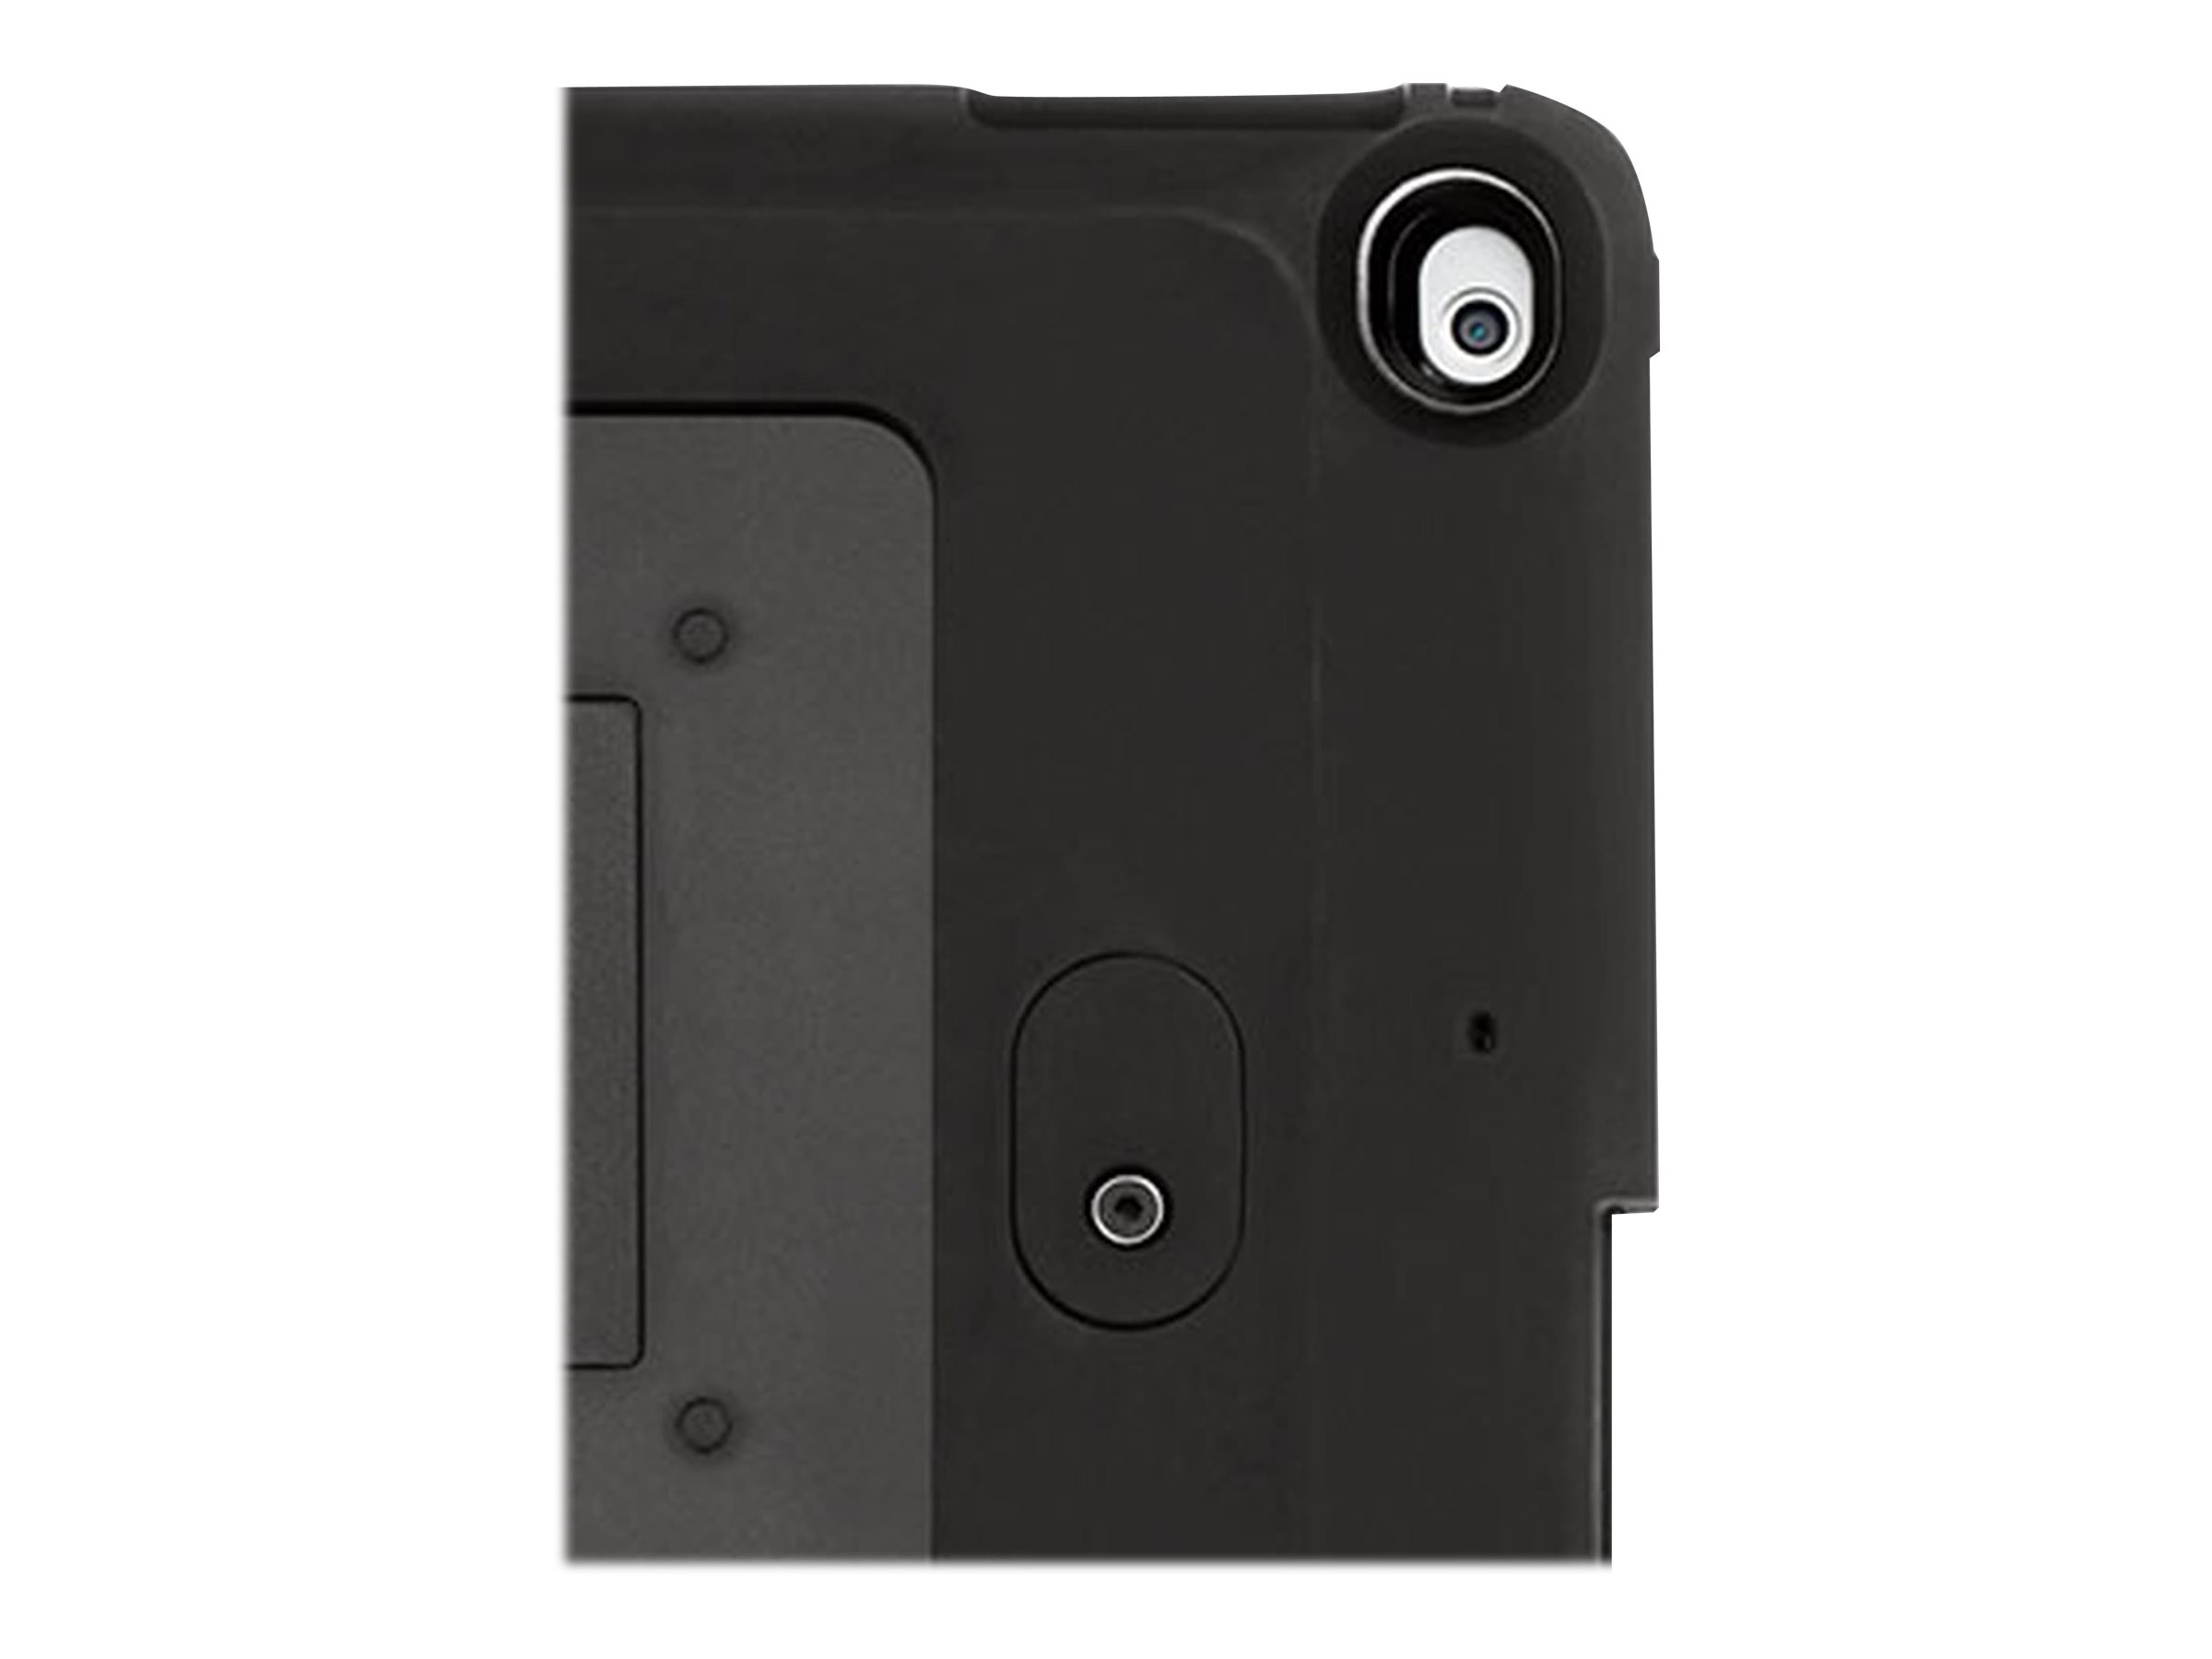 Kensington SecureBack Rugged Payment Carry Case for iPad Air iPad Air 2, Black, K97907WW